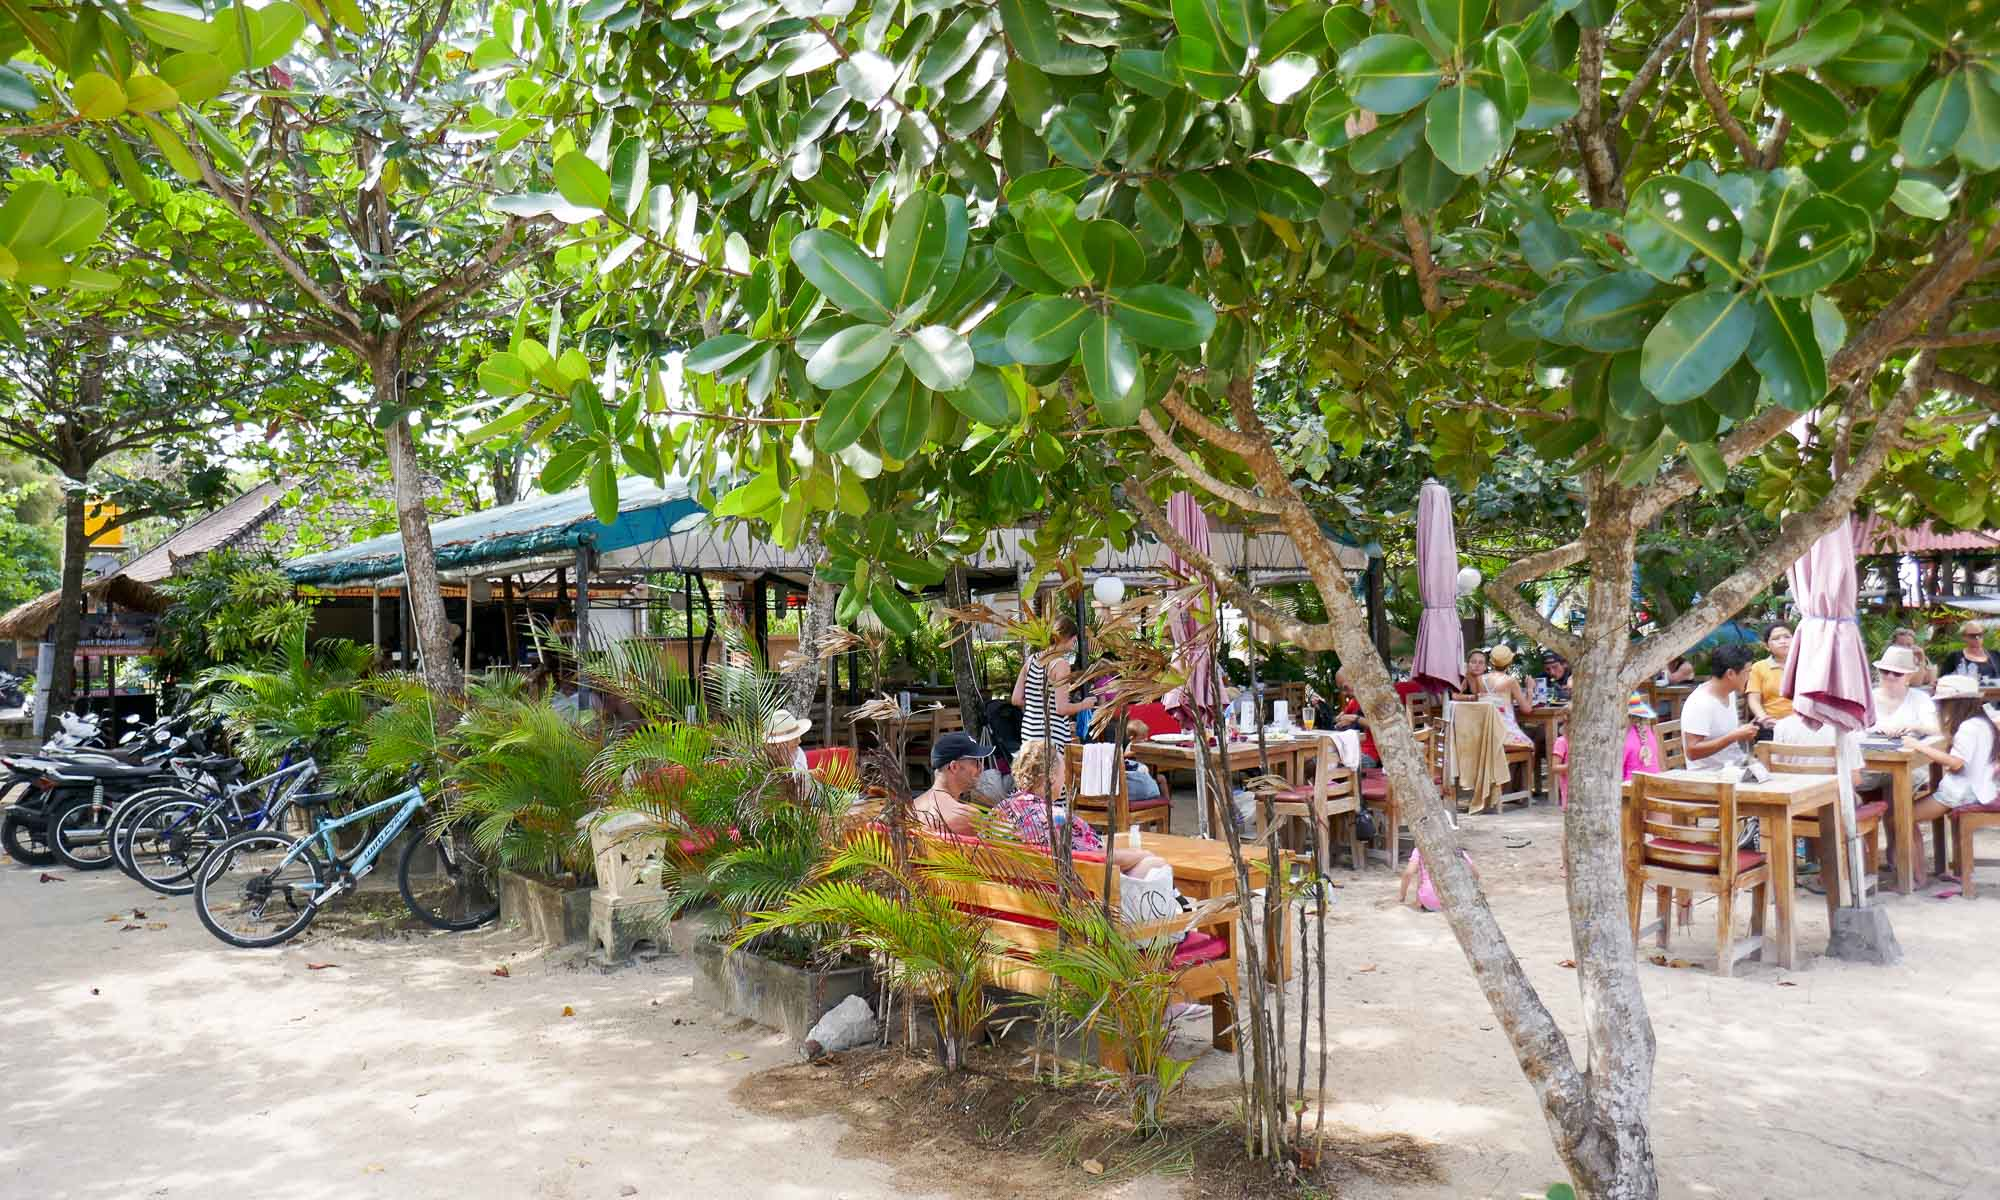 Beachside cafes in Sanur